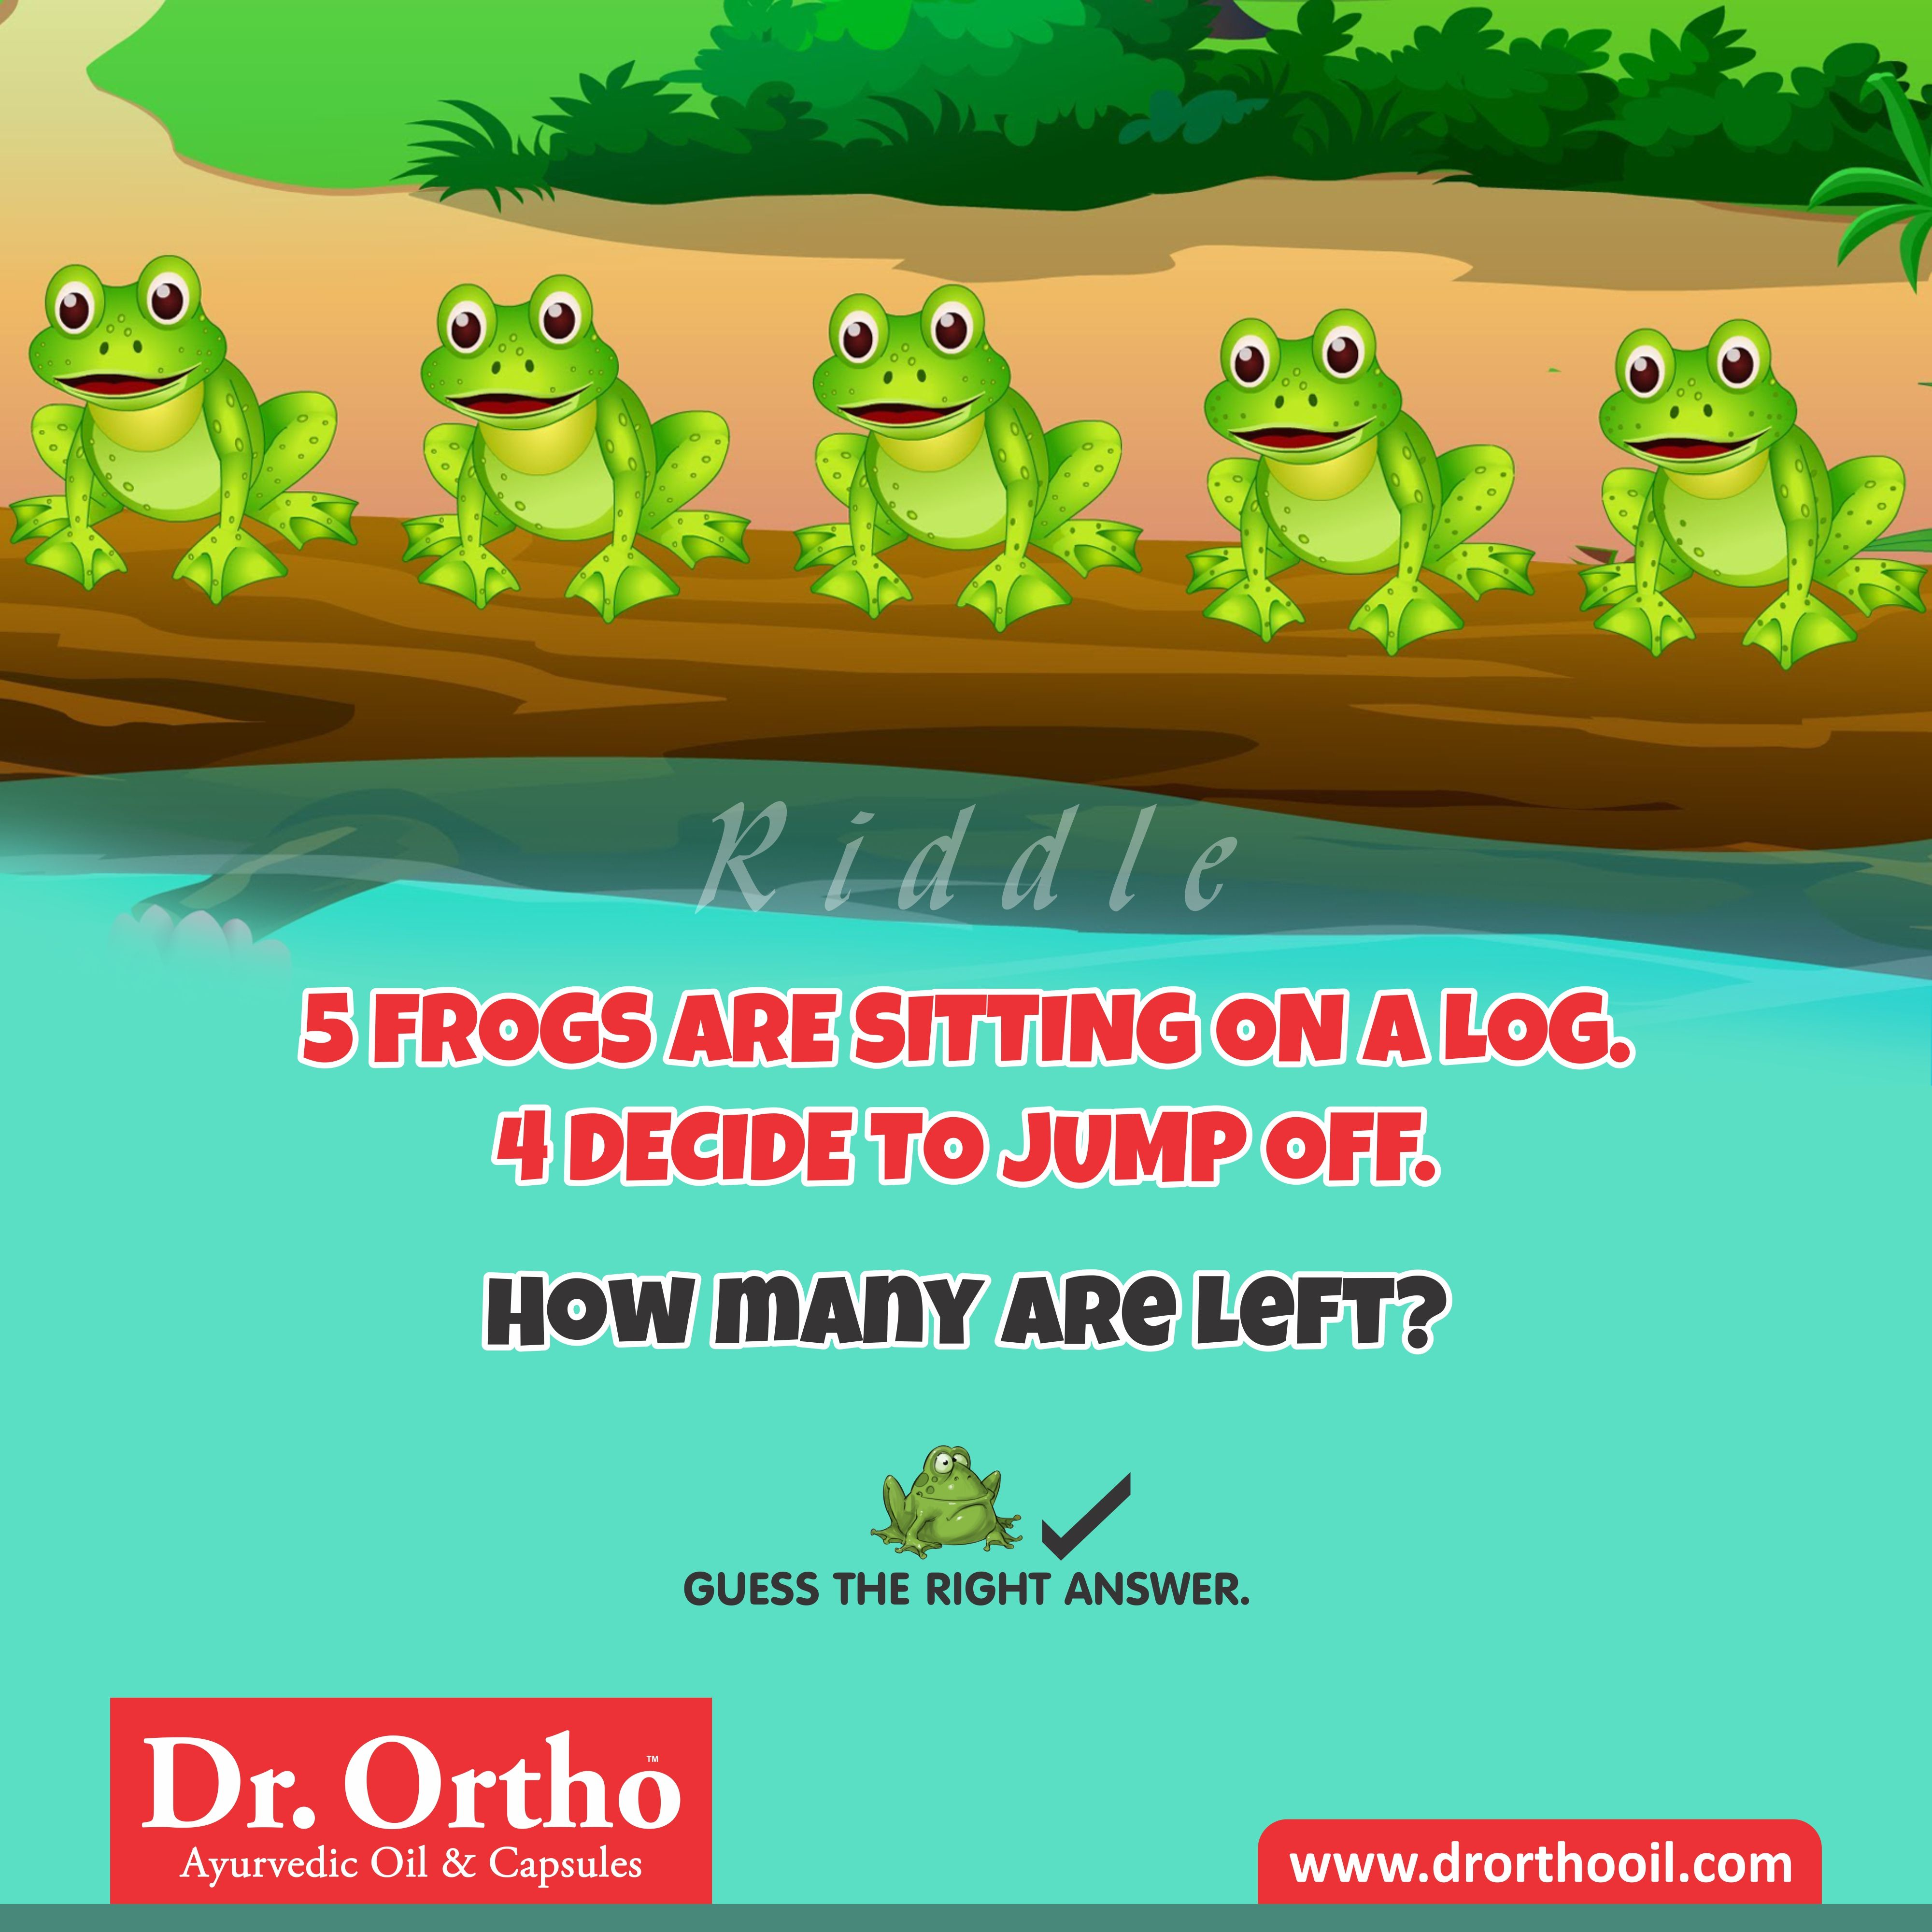 Drortho Riddle How Many are left ? Guess The Right